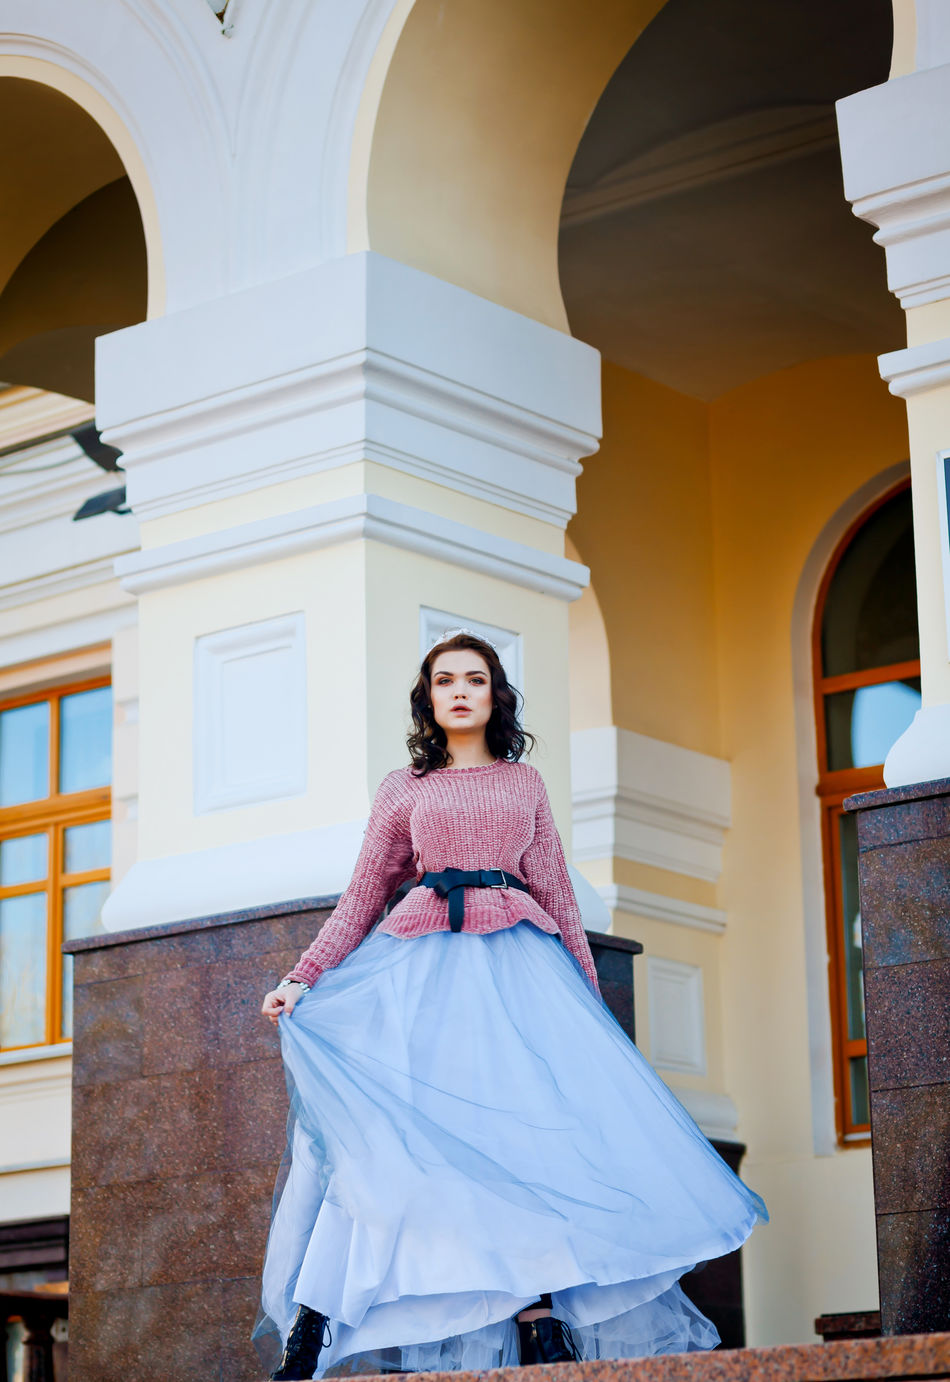 Architecture Beauty Editorial  Editorial Photography Fashion Fashion Glamour Lifestyles Millennial Pink One Young Woman Only Outdoor Photography Smiling Standing